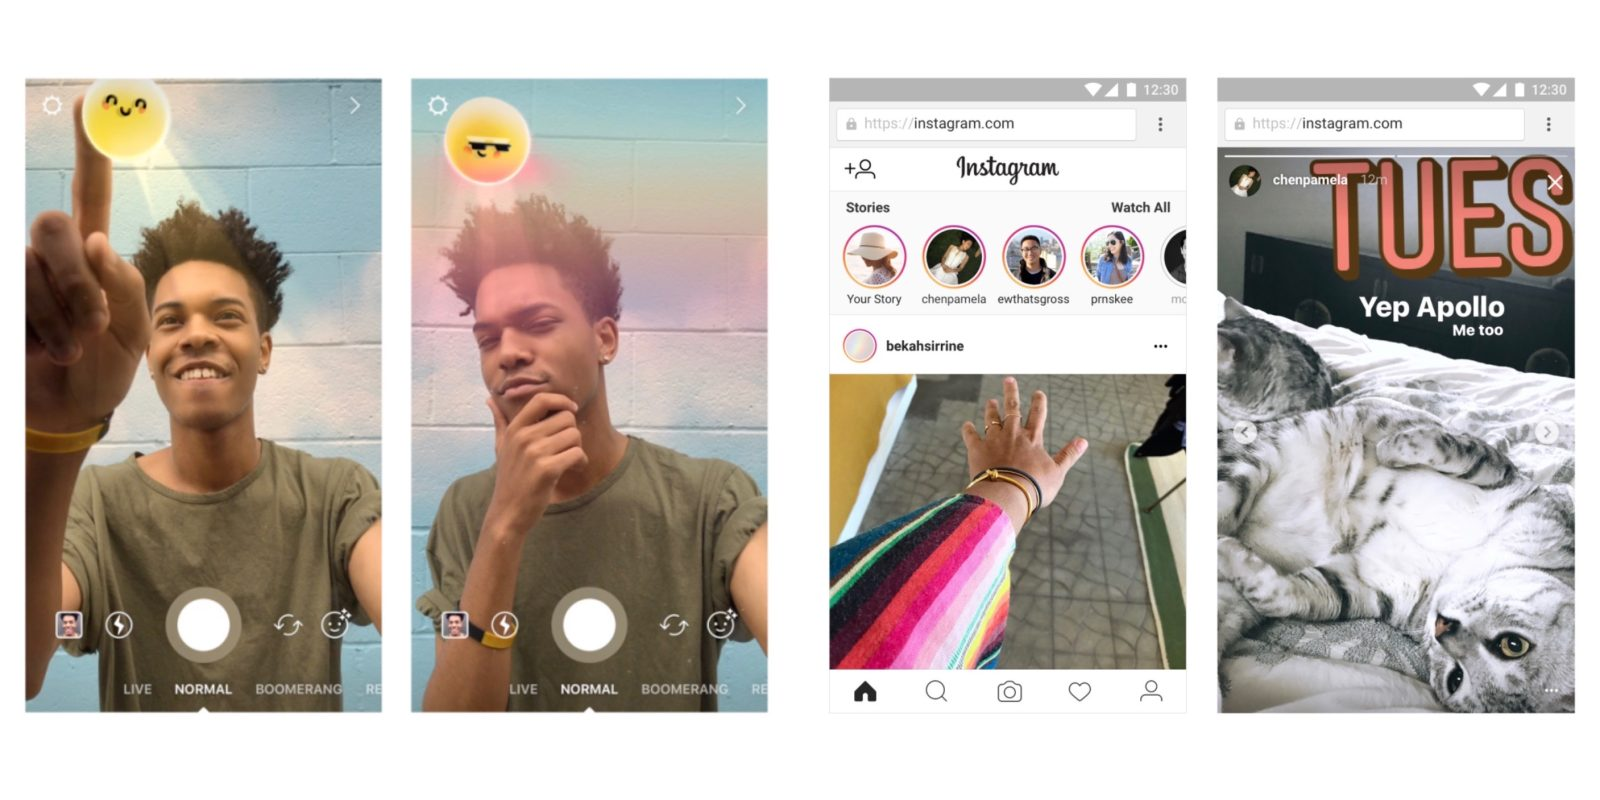 Instagram bringing Stories feature to the web, introduces